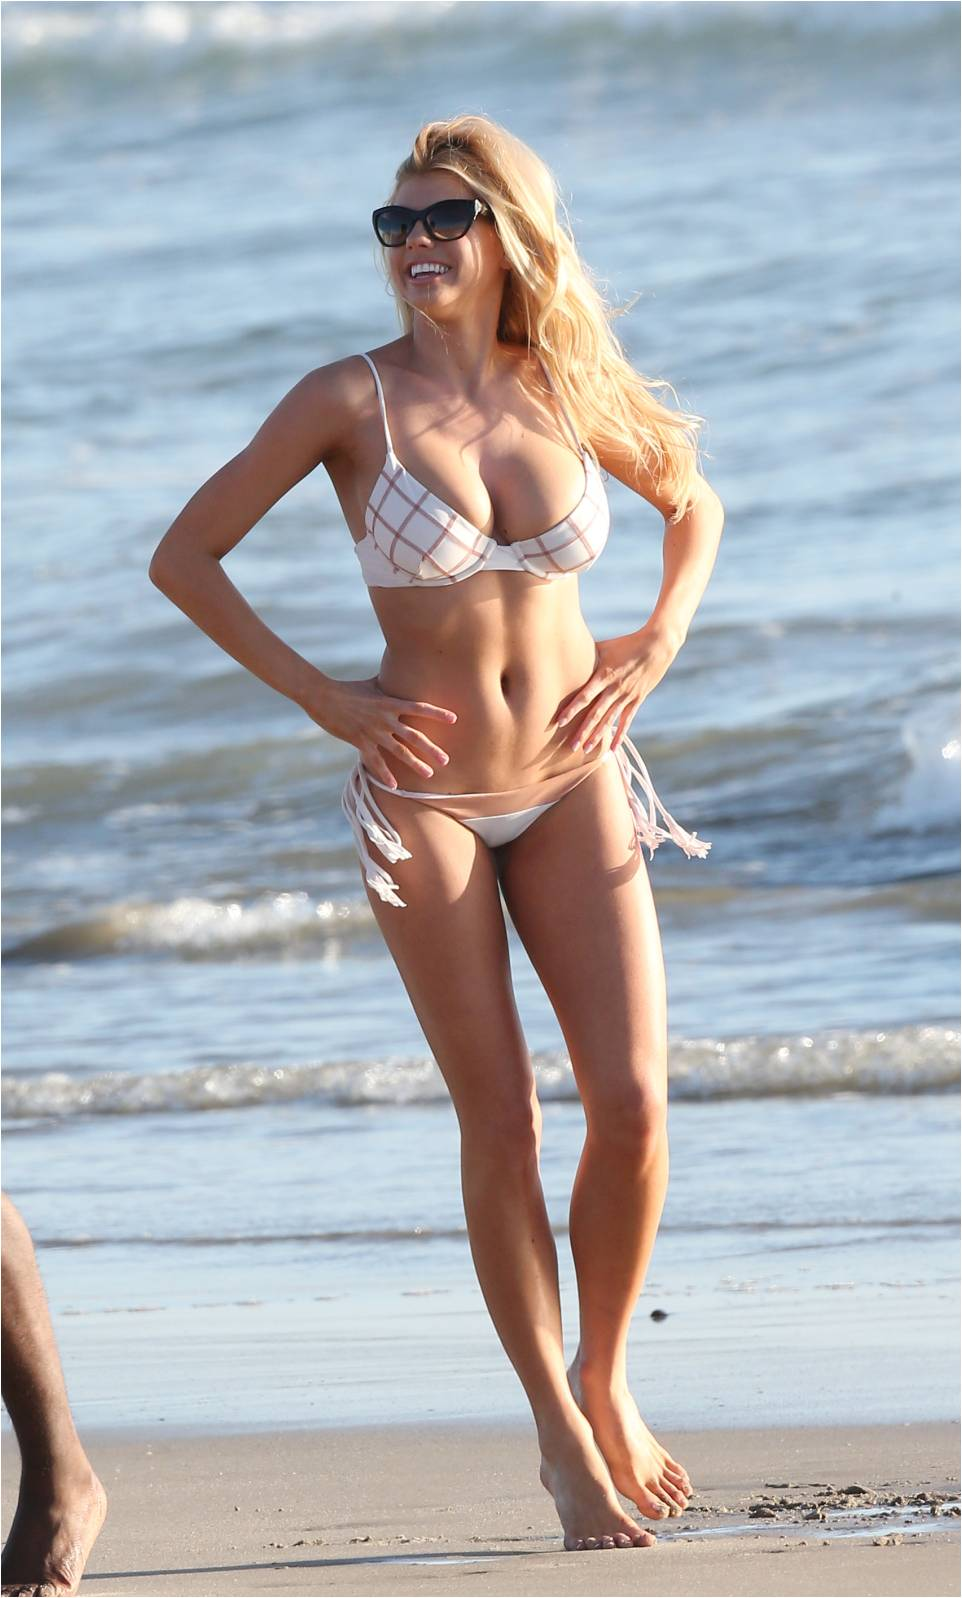 Charlotte McKinney - 2015 Bikini Moments